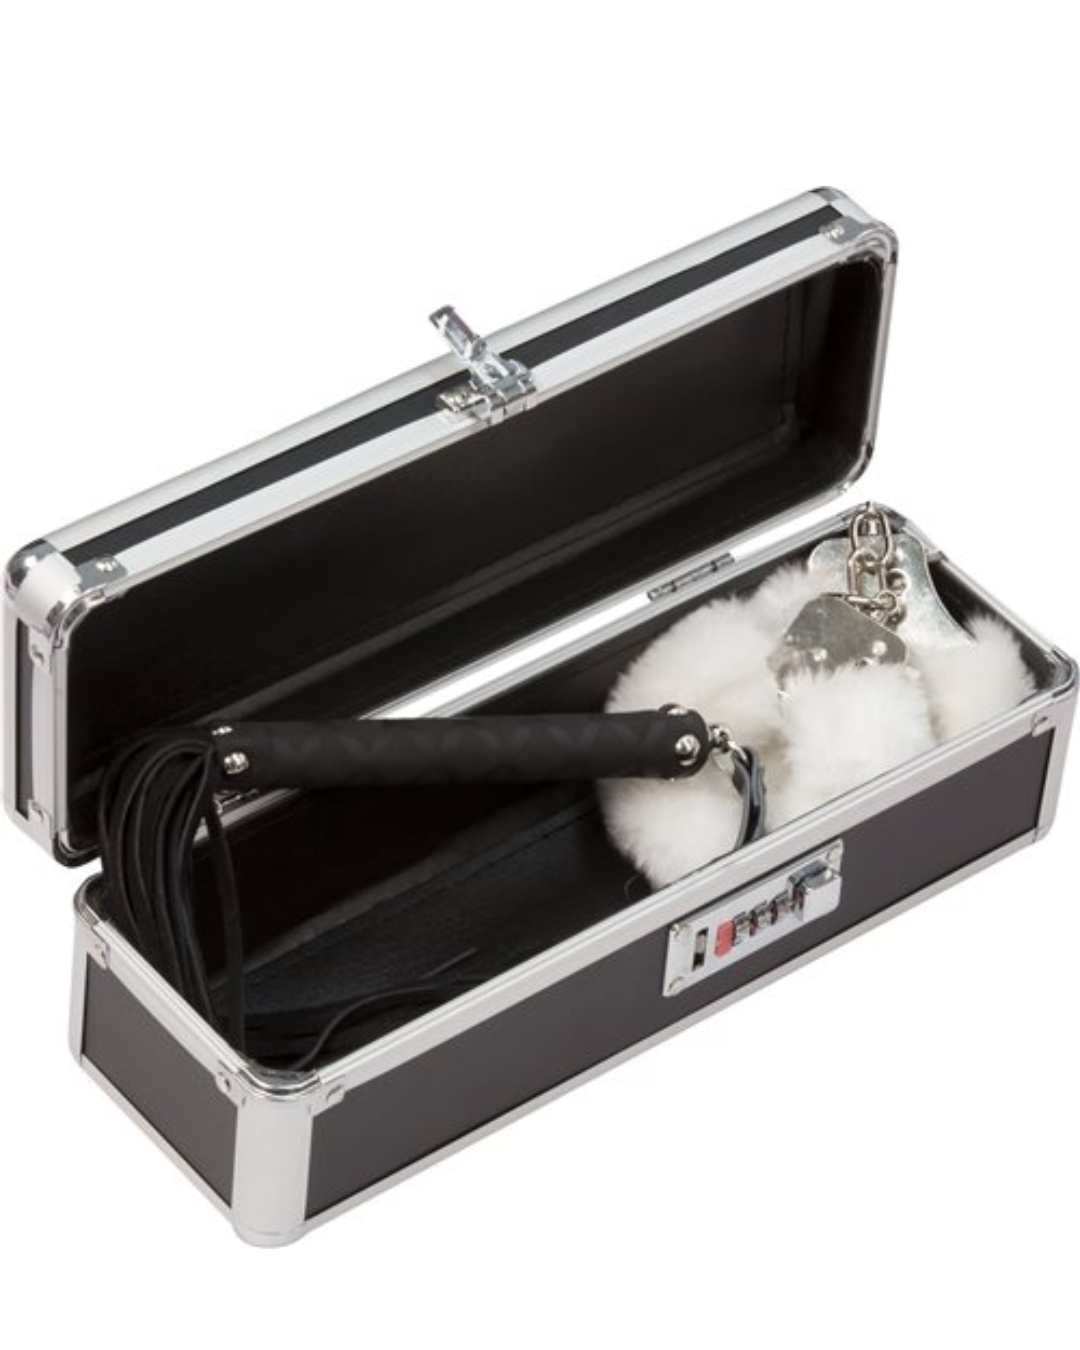 Lockable Vibrator Case Small - Black open with toys inside